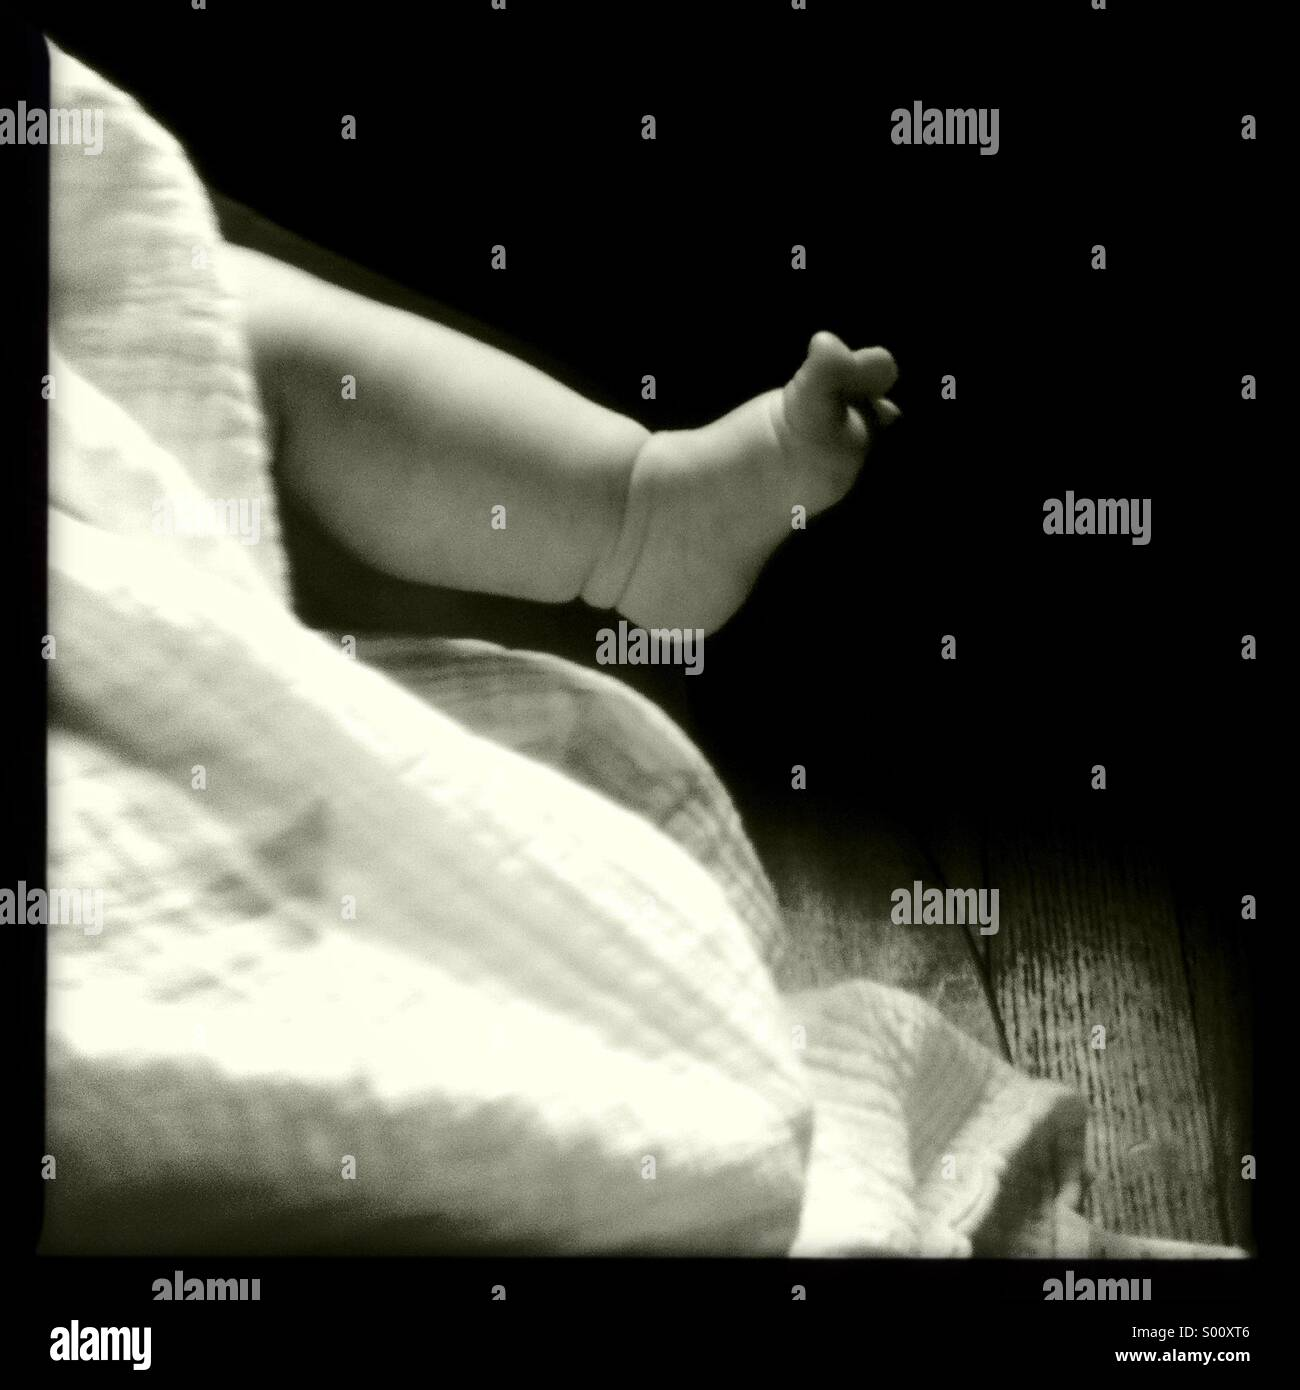 A Baby's chubby leg and foot in pretty light. - Stock Image